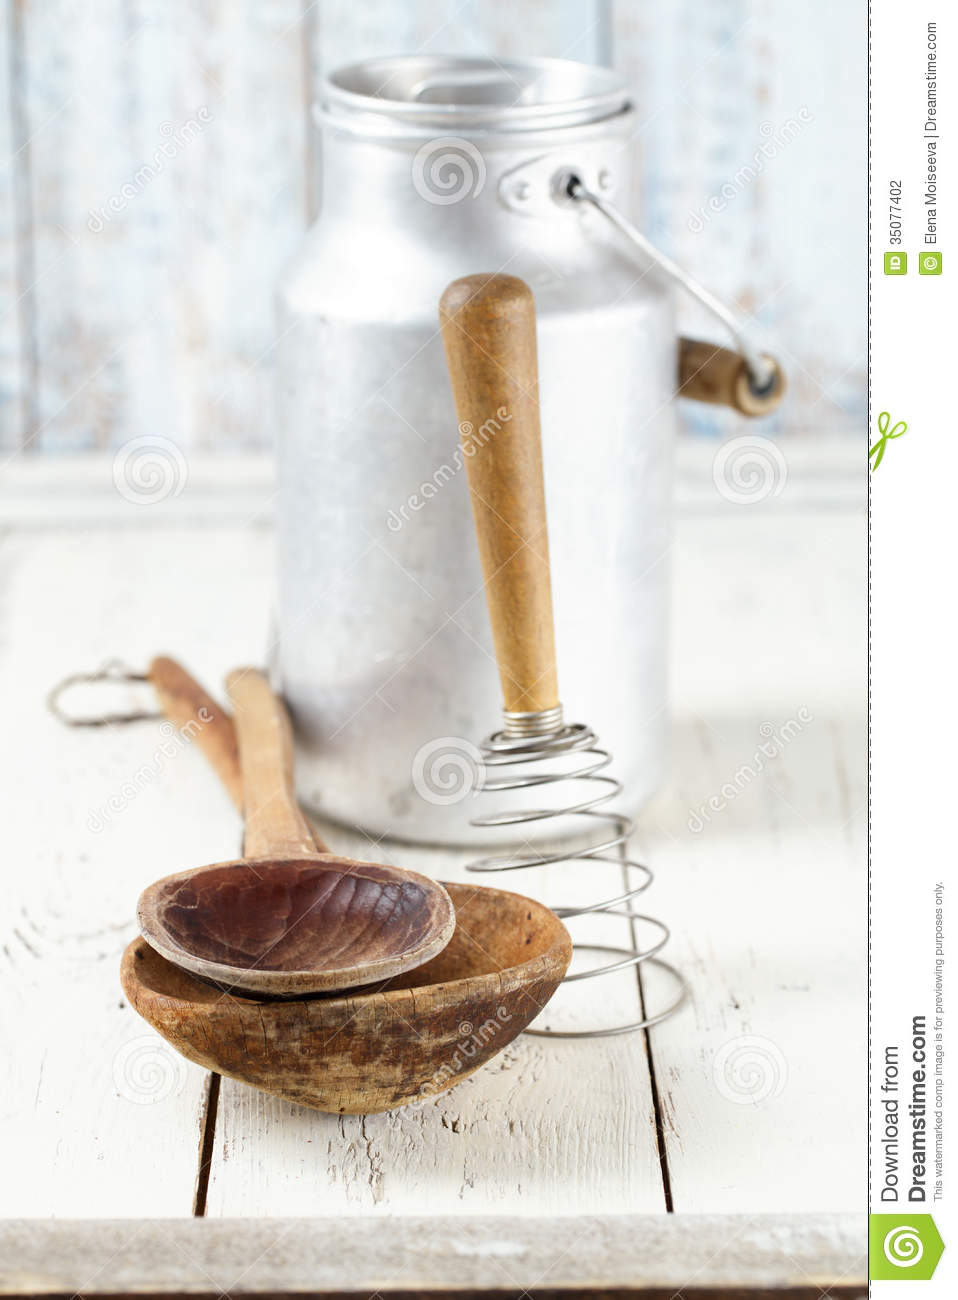 Retro Kitchen Utensils Tools On Old Wooden Table In Rustic